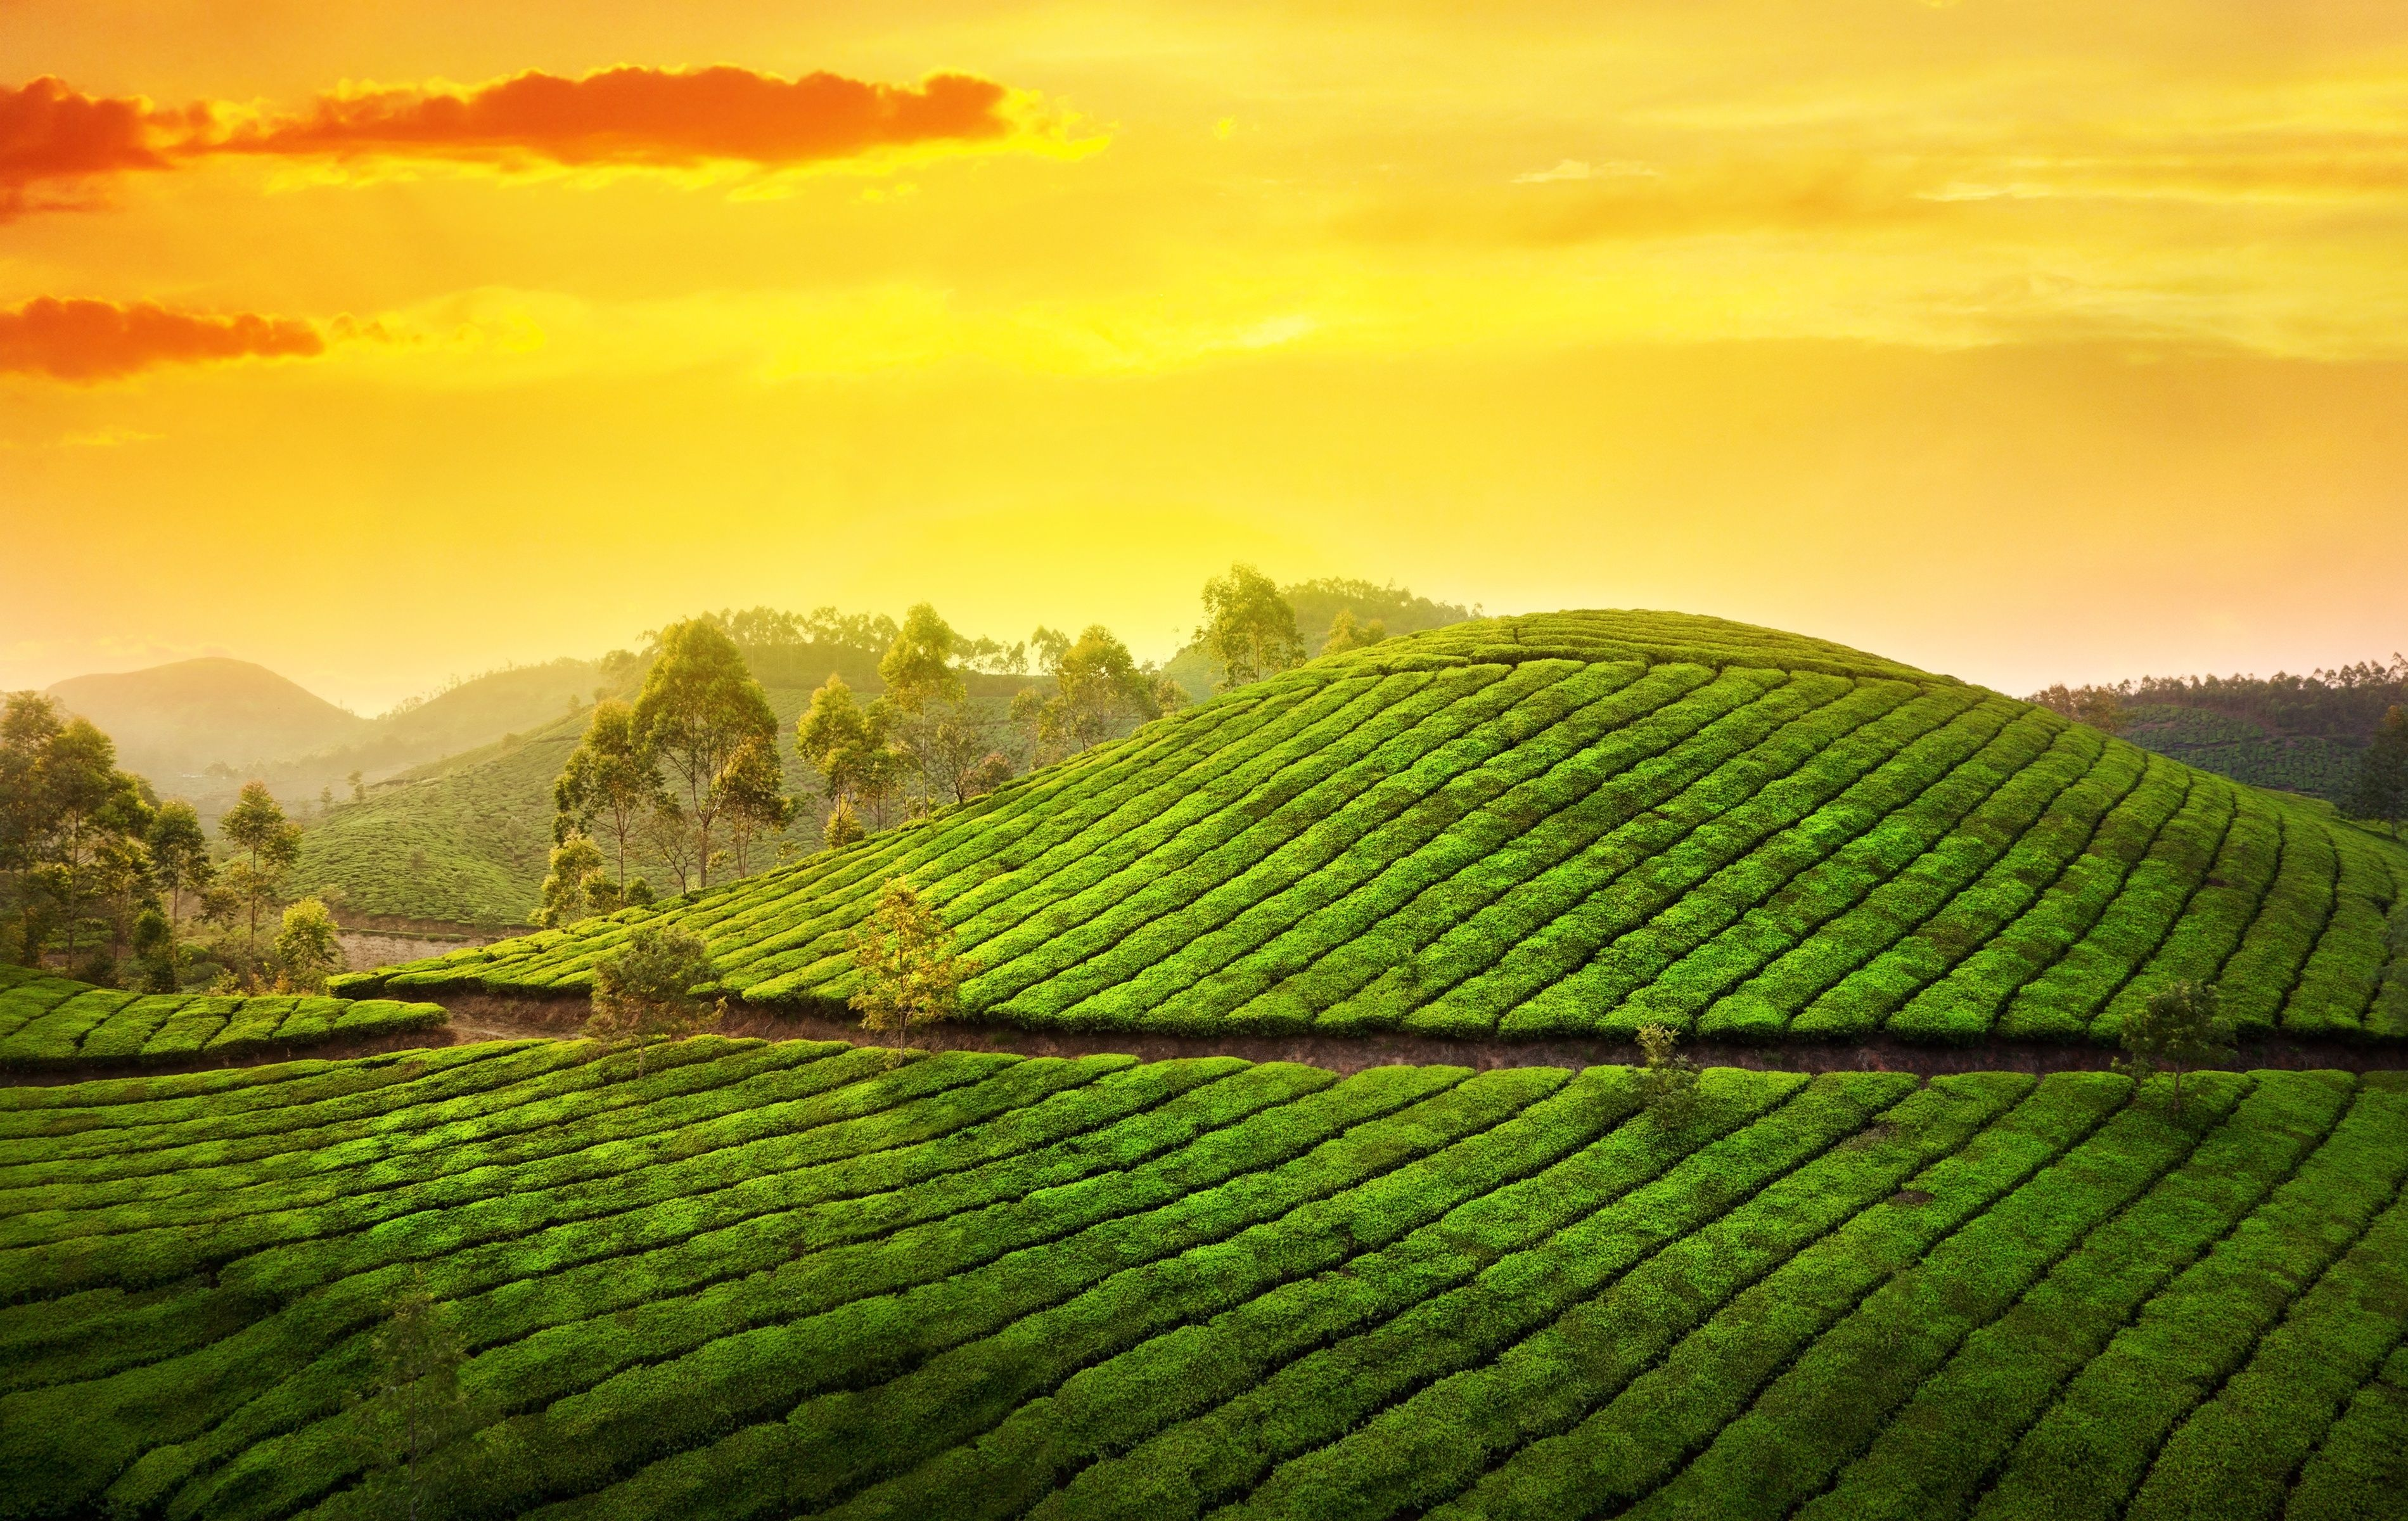 Kerala Nature Rain Hd Wallpapers Images 22 Hd Wallpapers Buzz Travel Fun Trip Family Travel